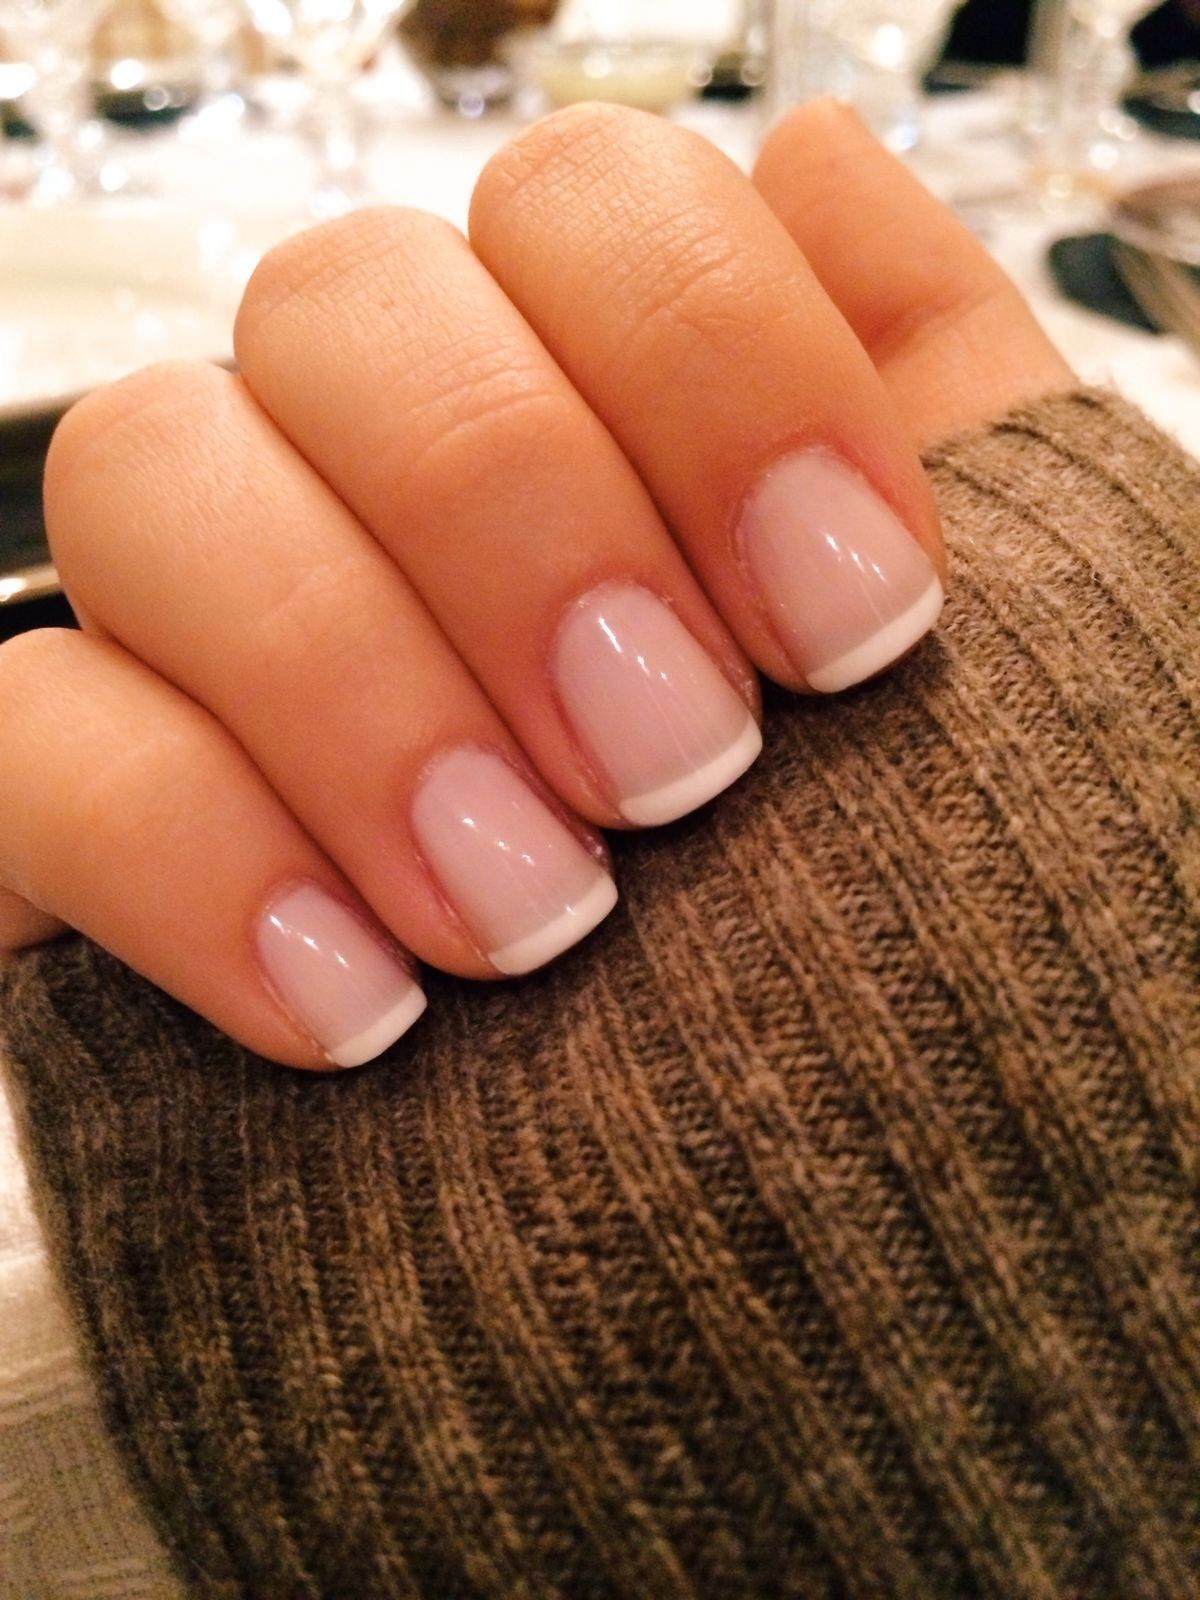 26 awesome french manicure designs hottest french manicure ideas 26 awesome french manicure designs hottest french manicure ideas solutioingenieria Choice Image